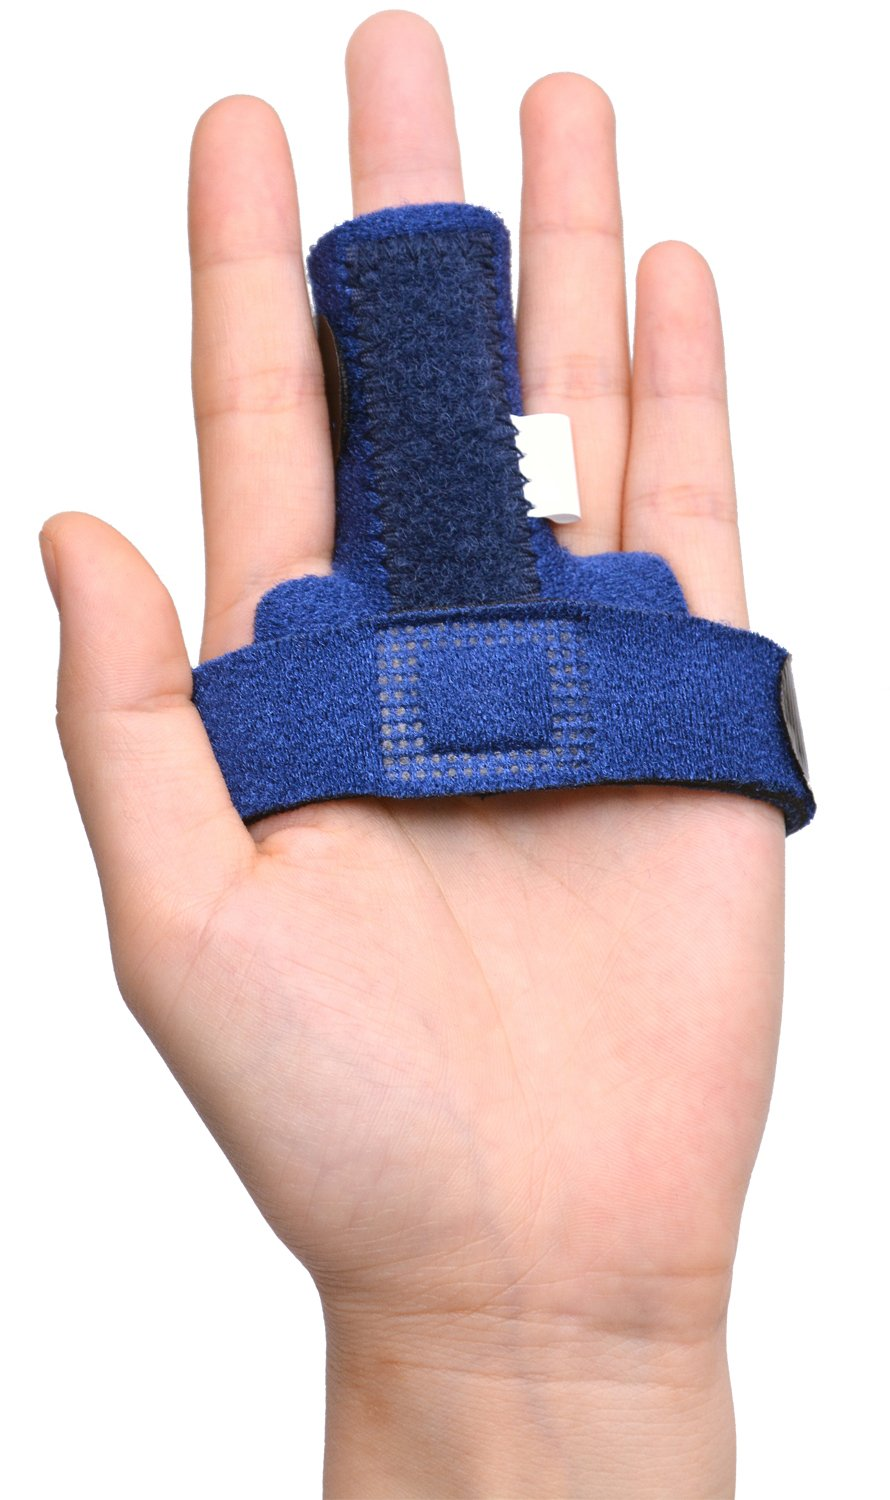 7TECH Adjustable Trigger Finger Splint for Alleviating Finger Locking, Popping, Curved & Pain Relief